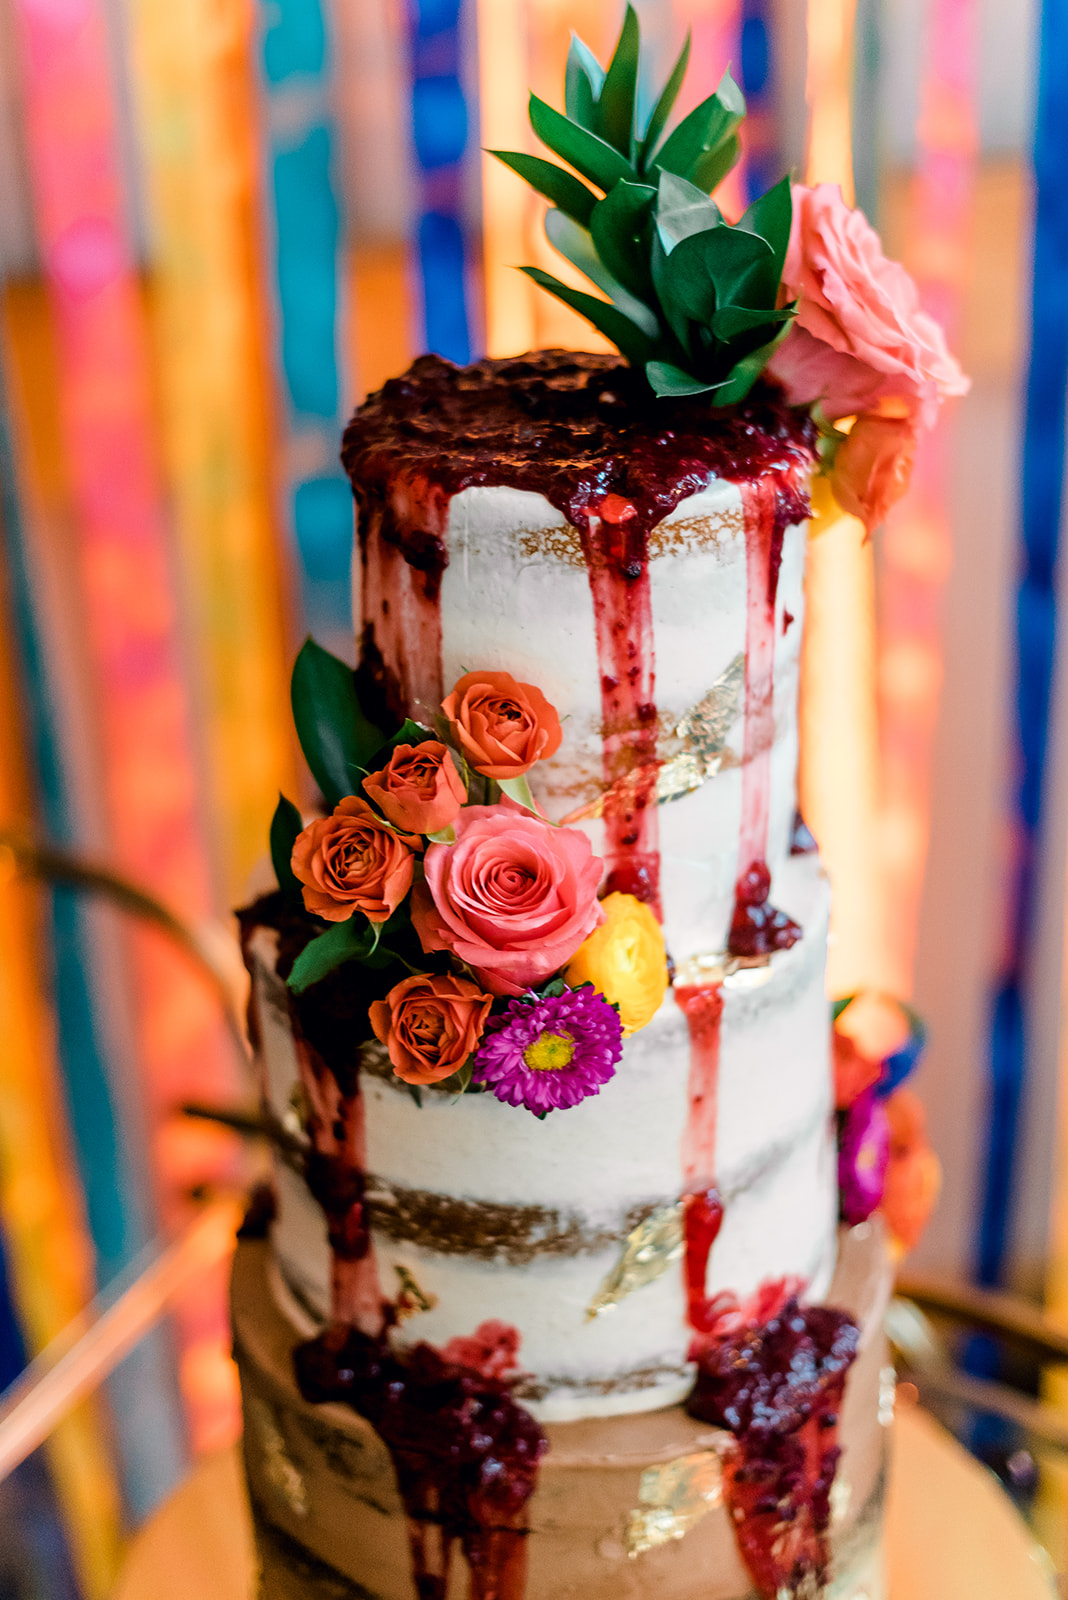 Fun & Colorful Barn Wedding Naked Cake with Flowers at Heaven Sent Farms in Avella Dawn Derbyshire Photography (4).jpg